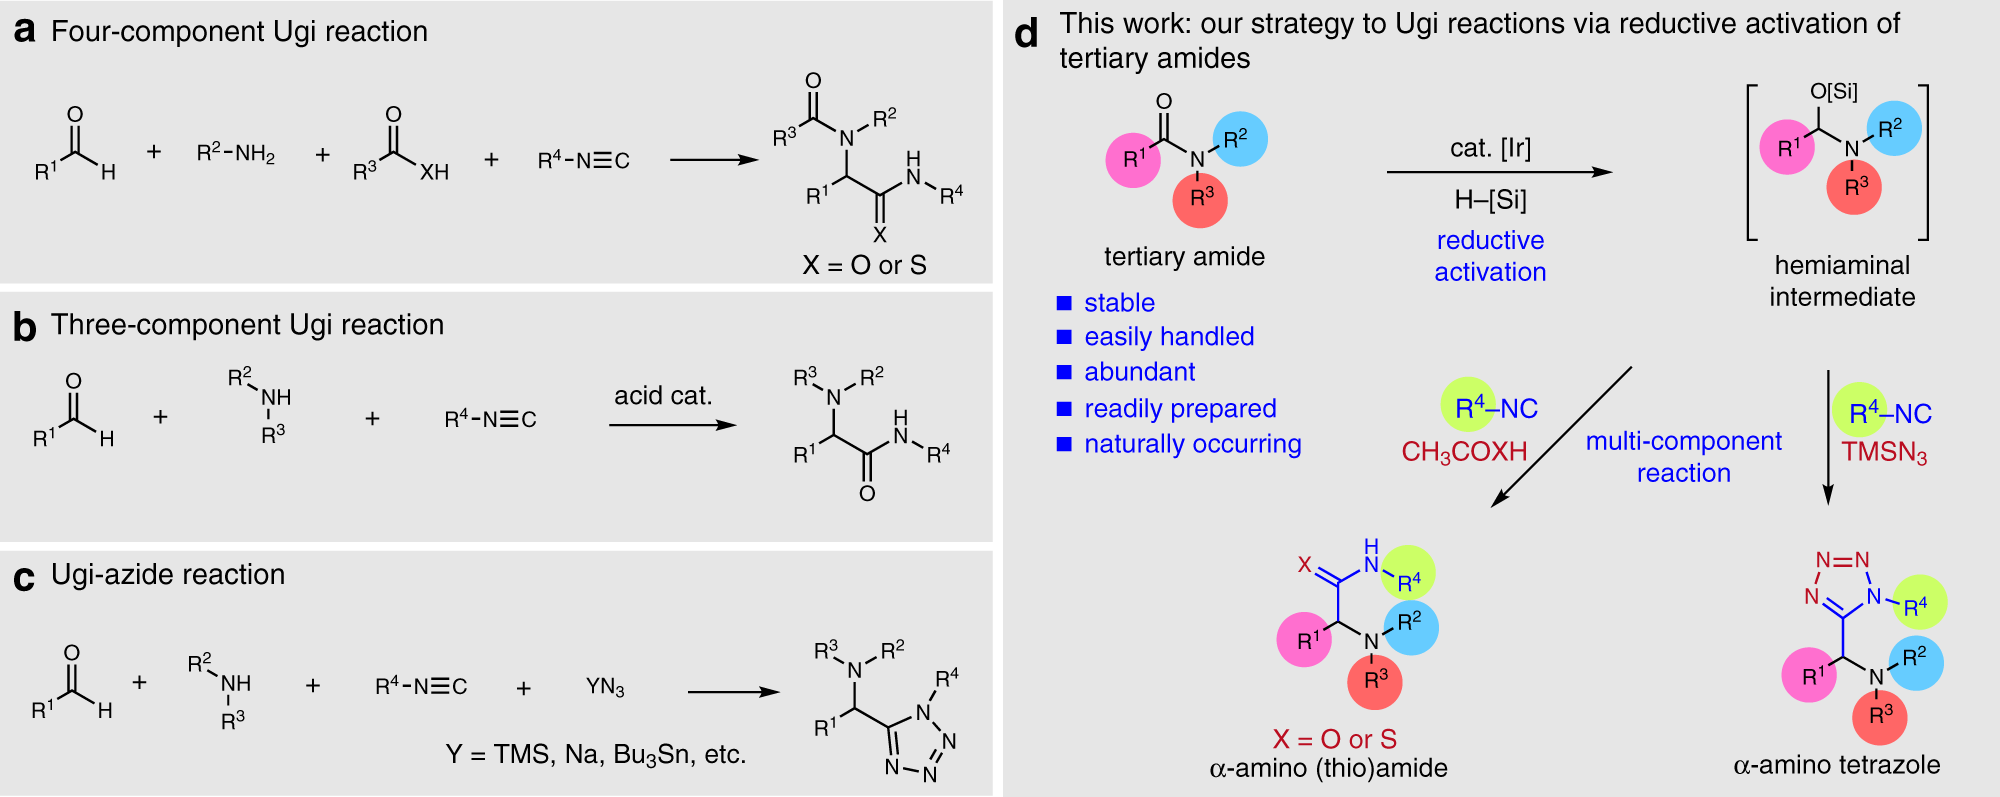 Iridium Catalyzed Reductive Ugi Type Reactions Of Tertiary Amides